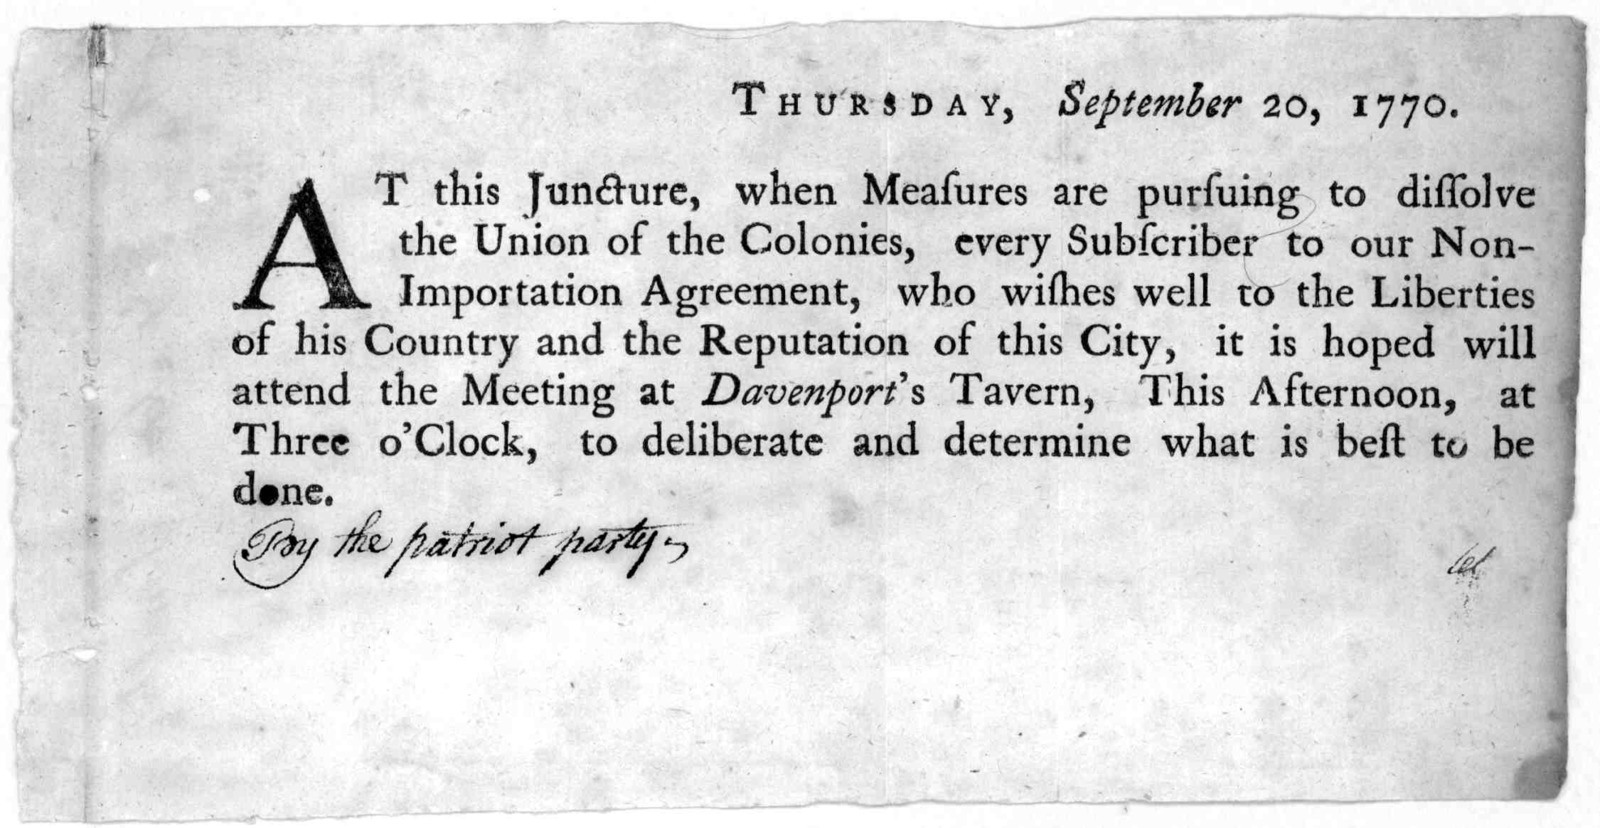 Thursday, September 20, 1770. At this juncture, when measures are pursuing to dissolve the Union of the Colonies, every subscriber to our non-importation agreement, who wishes well to the liberties of his Country and the reputation of this City,